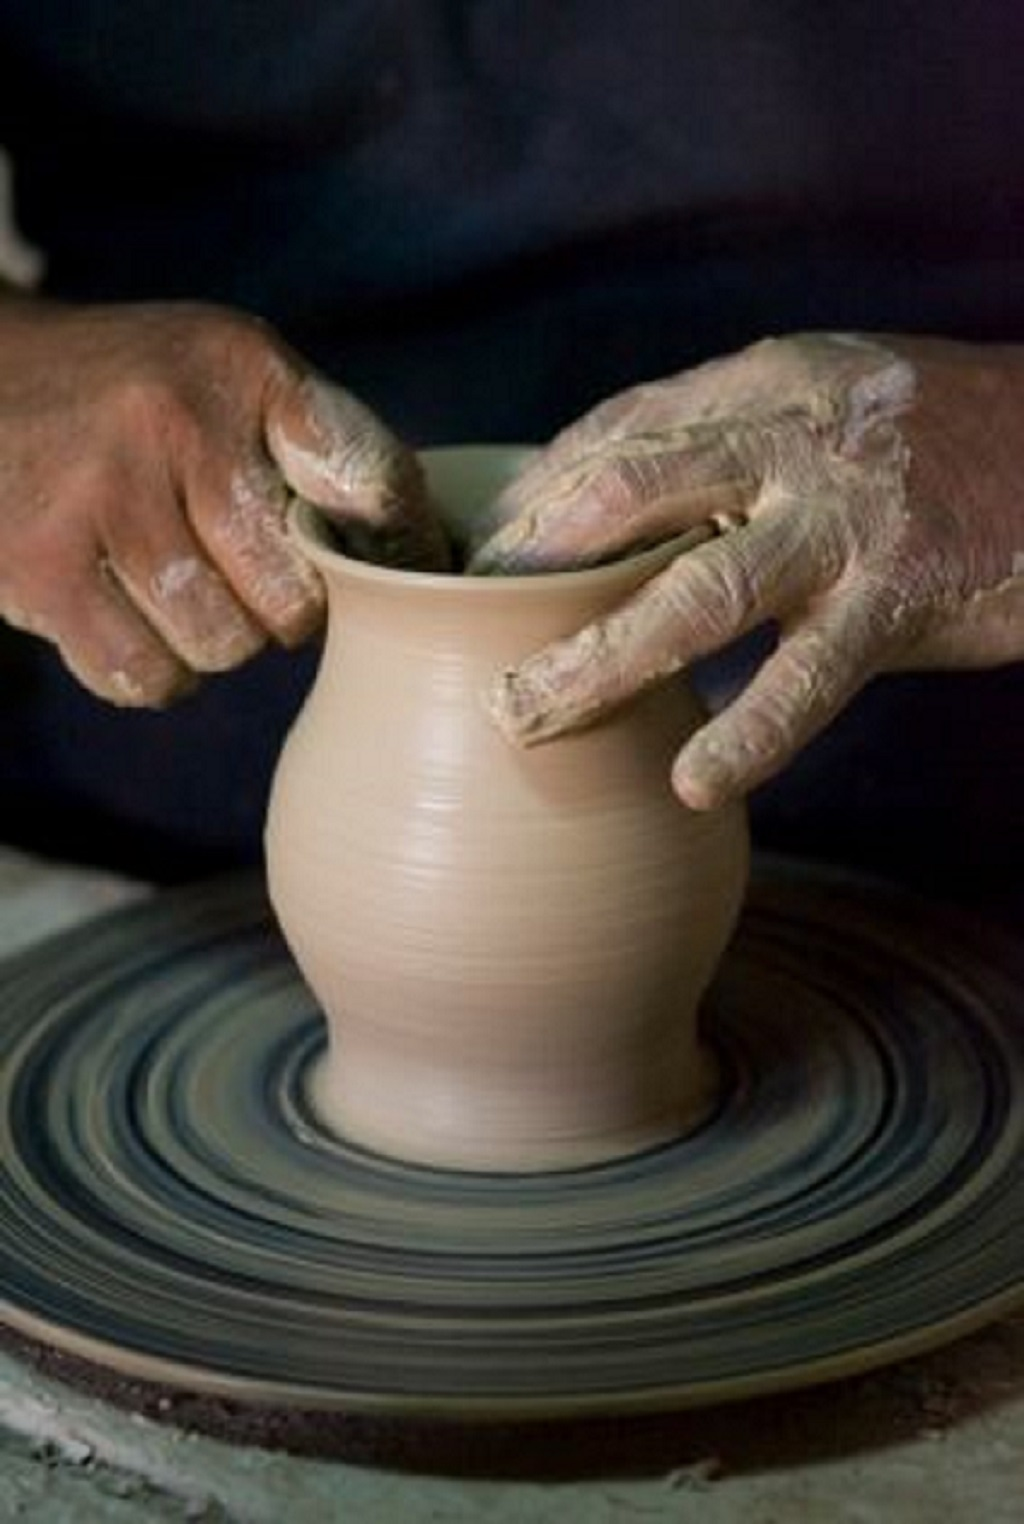 Try Out the Potter's Wheel